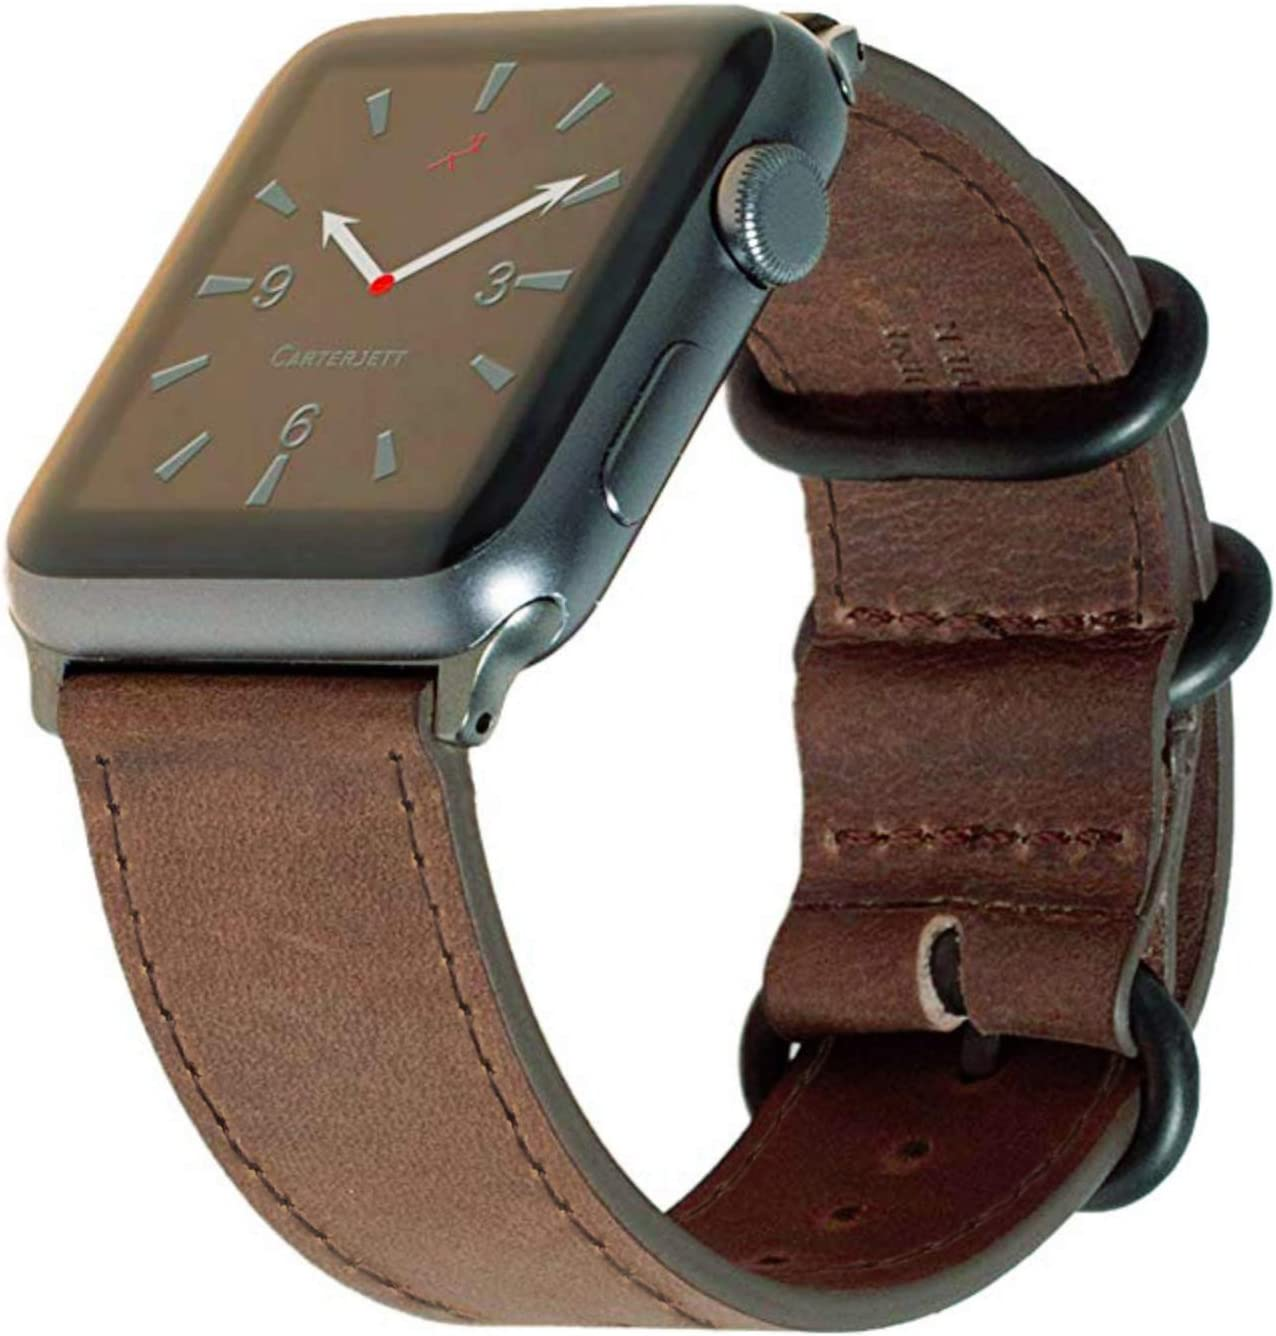 Carterjett Compatible for Apple Watch Band Leather 40mm 38mm Vintage Brown Replacement iWatch Bands Genuine Leather Retro Wrist Strap Military-Style Hardware Series 5 4 3 2 1 (38 40 S/M Brown)